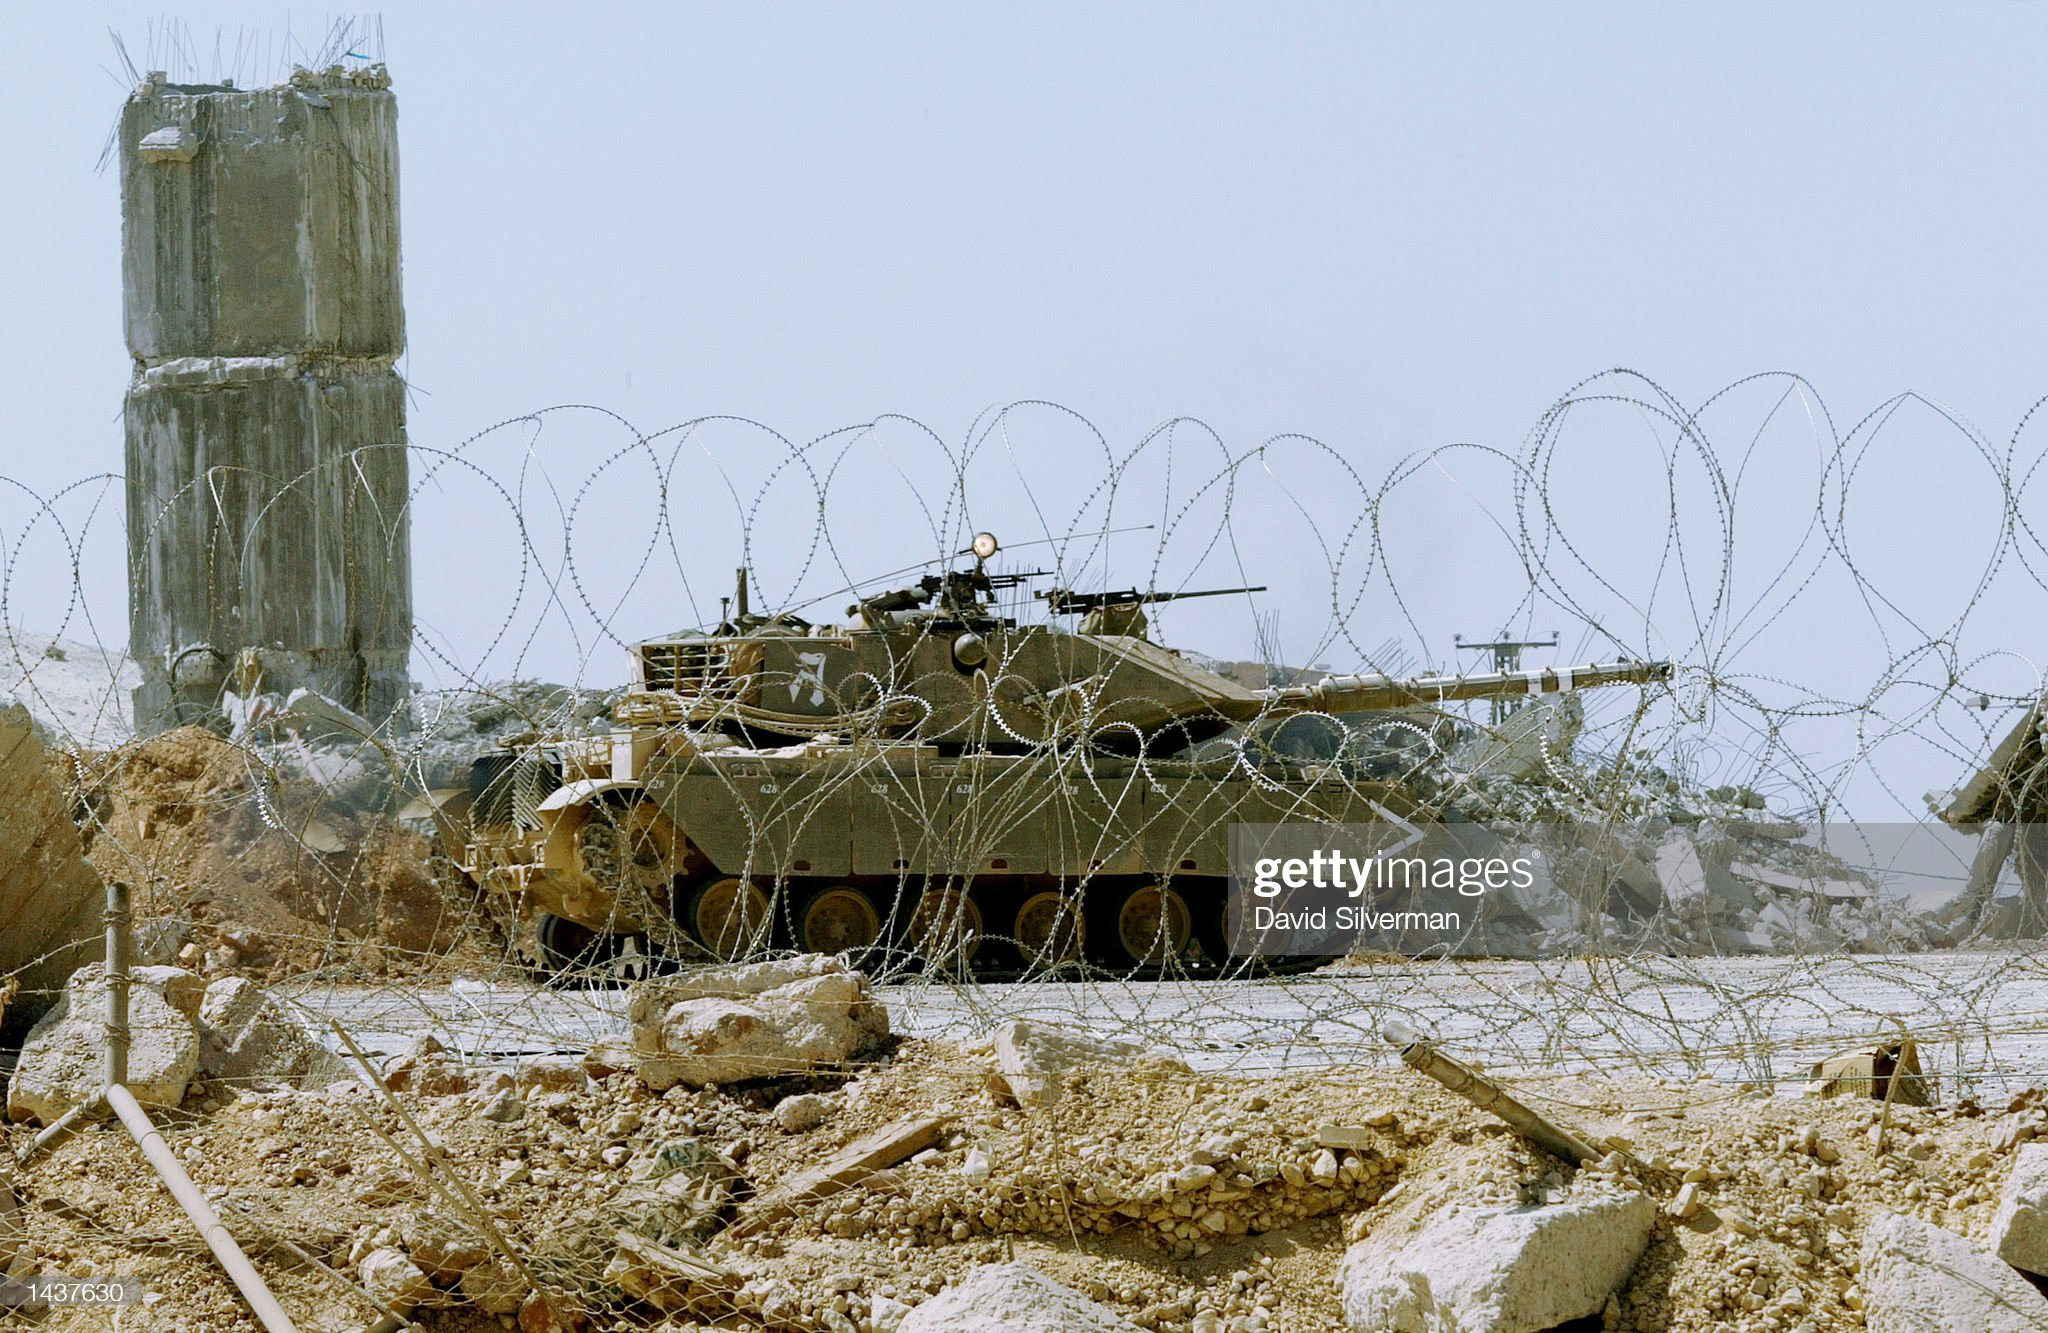 https://media.gettyimages.com/photos/the-last-israeli-tank-reverses-as-it-covers-the-israeli-army-out-of-picture-id1437630?s=2048x2048